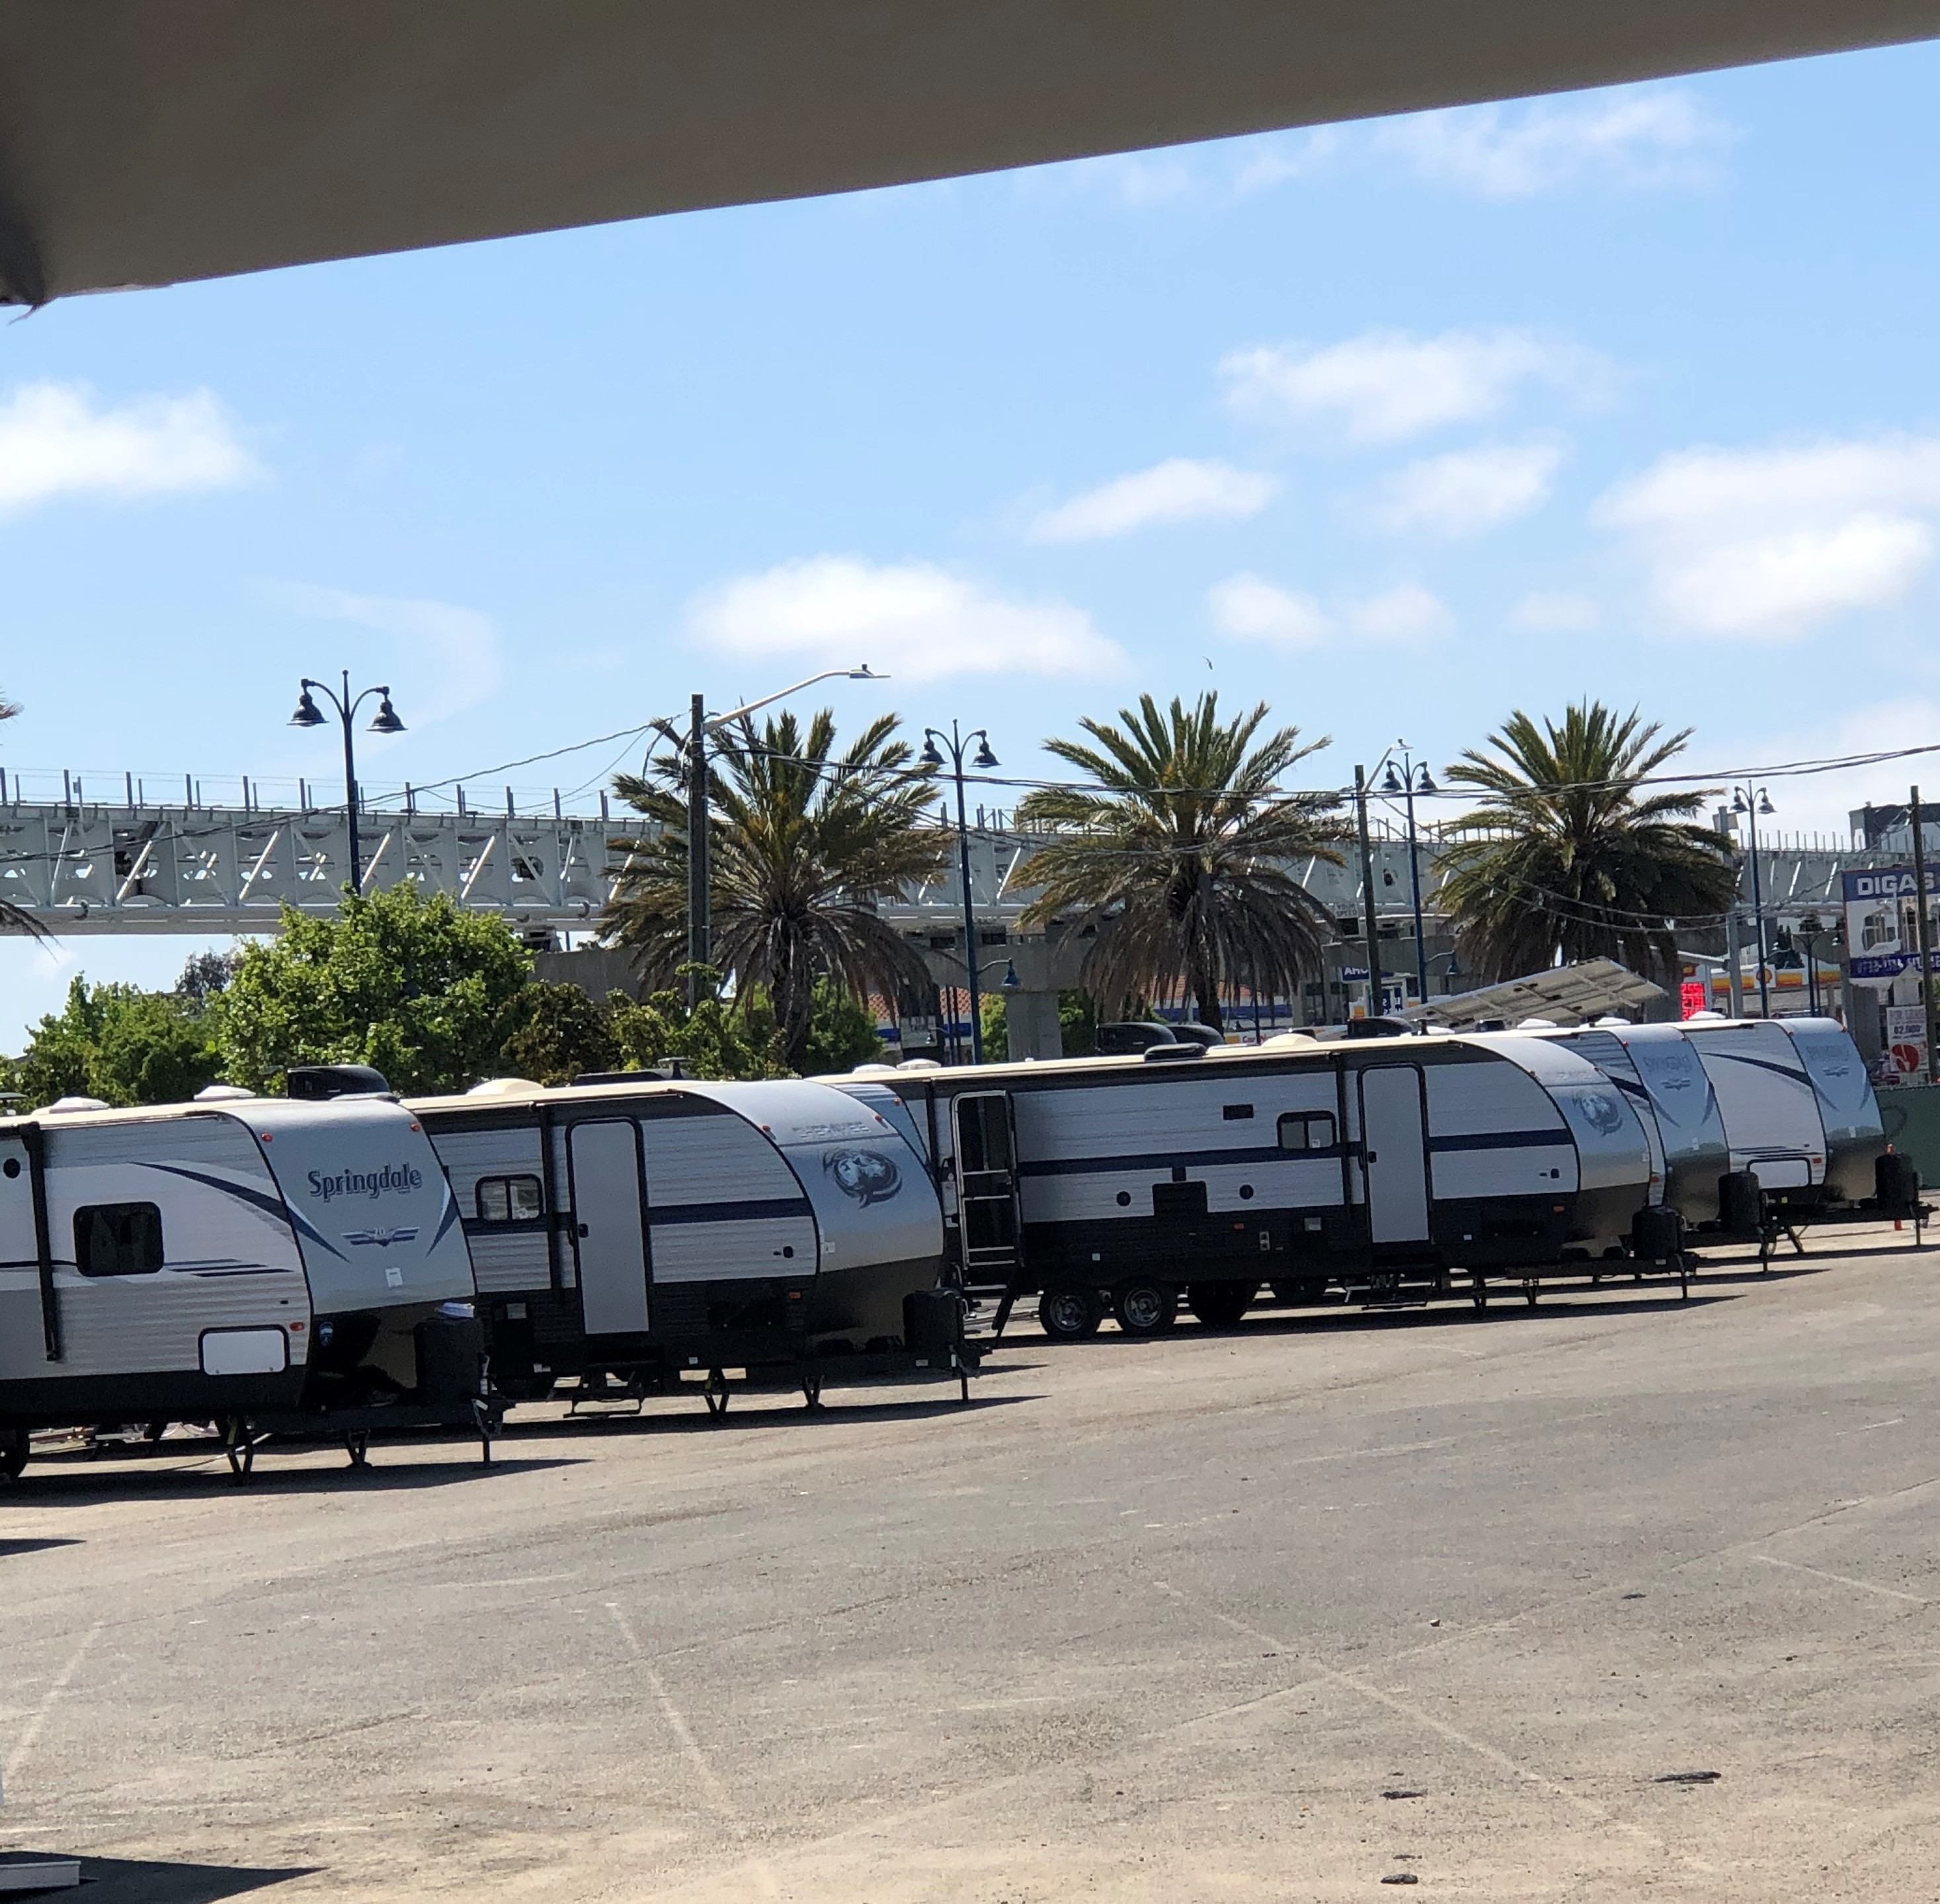 Trailers at East Oakland HomeBase site to house unsheltered residents vulnerable to COVID-19.